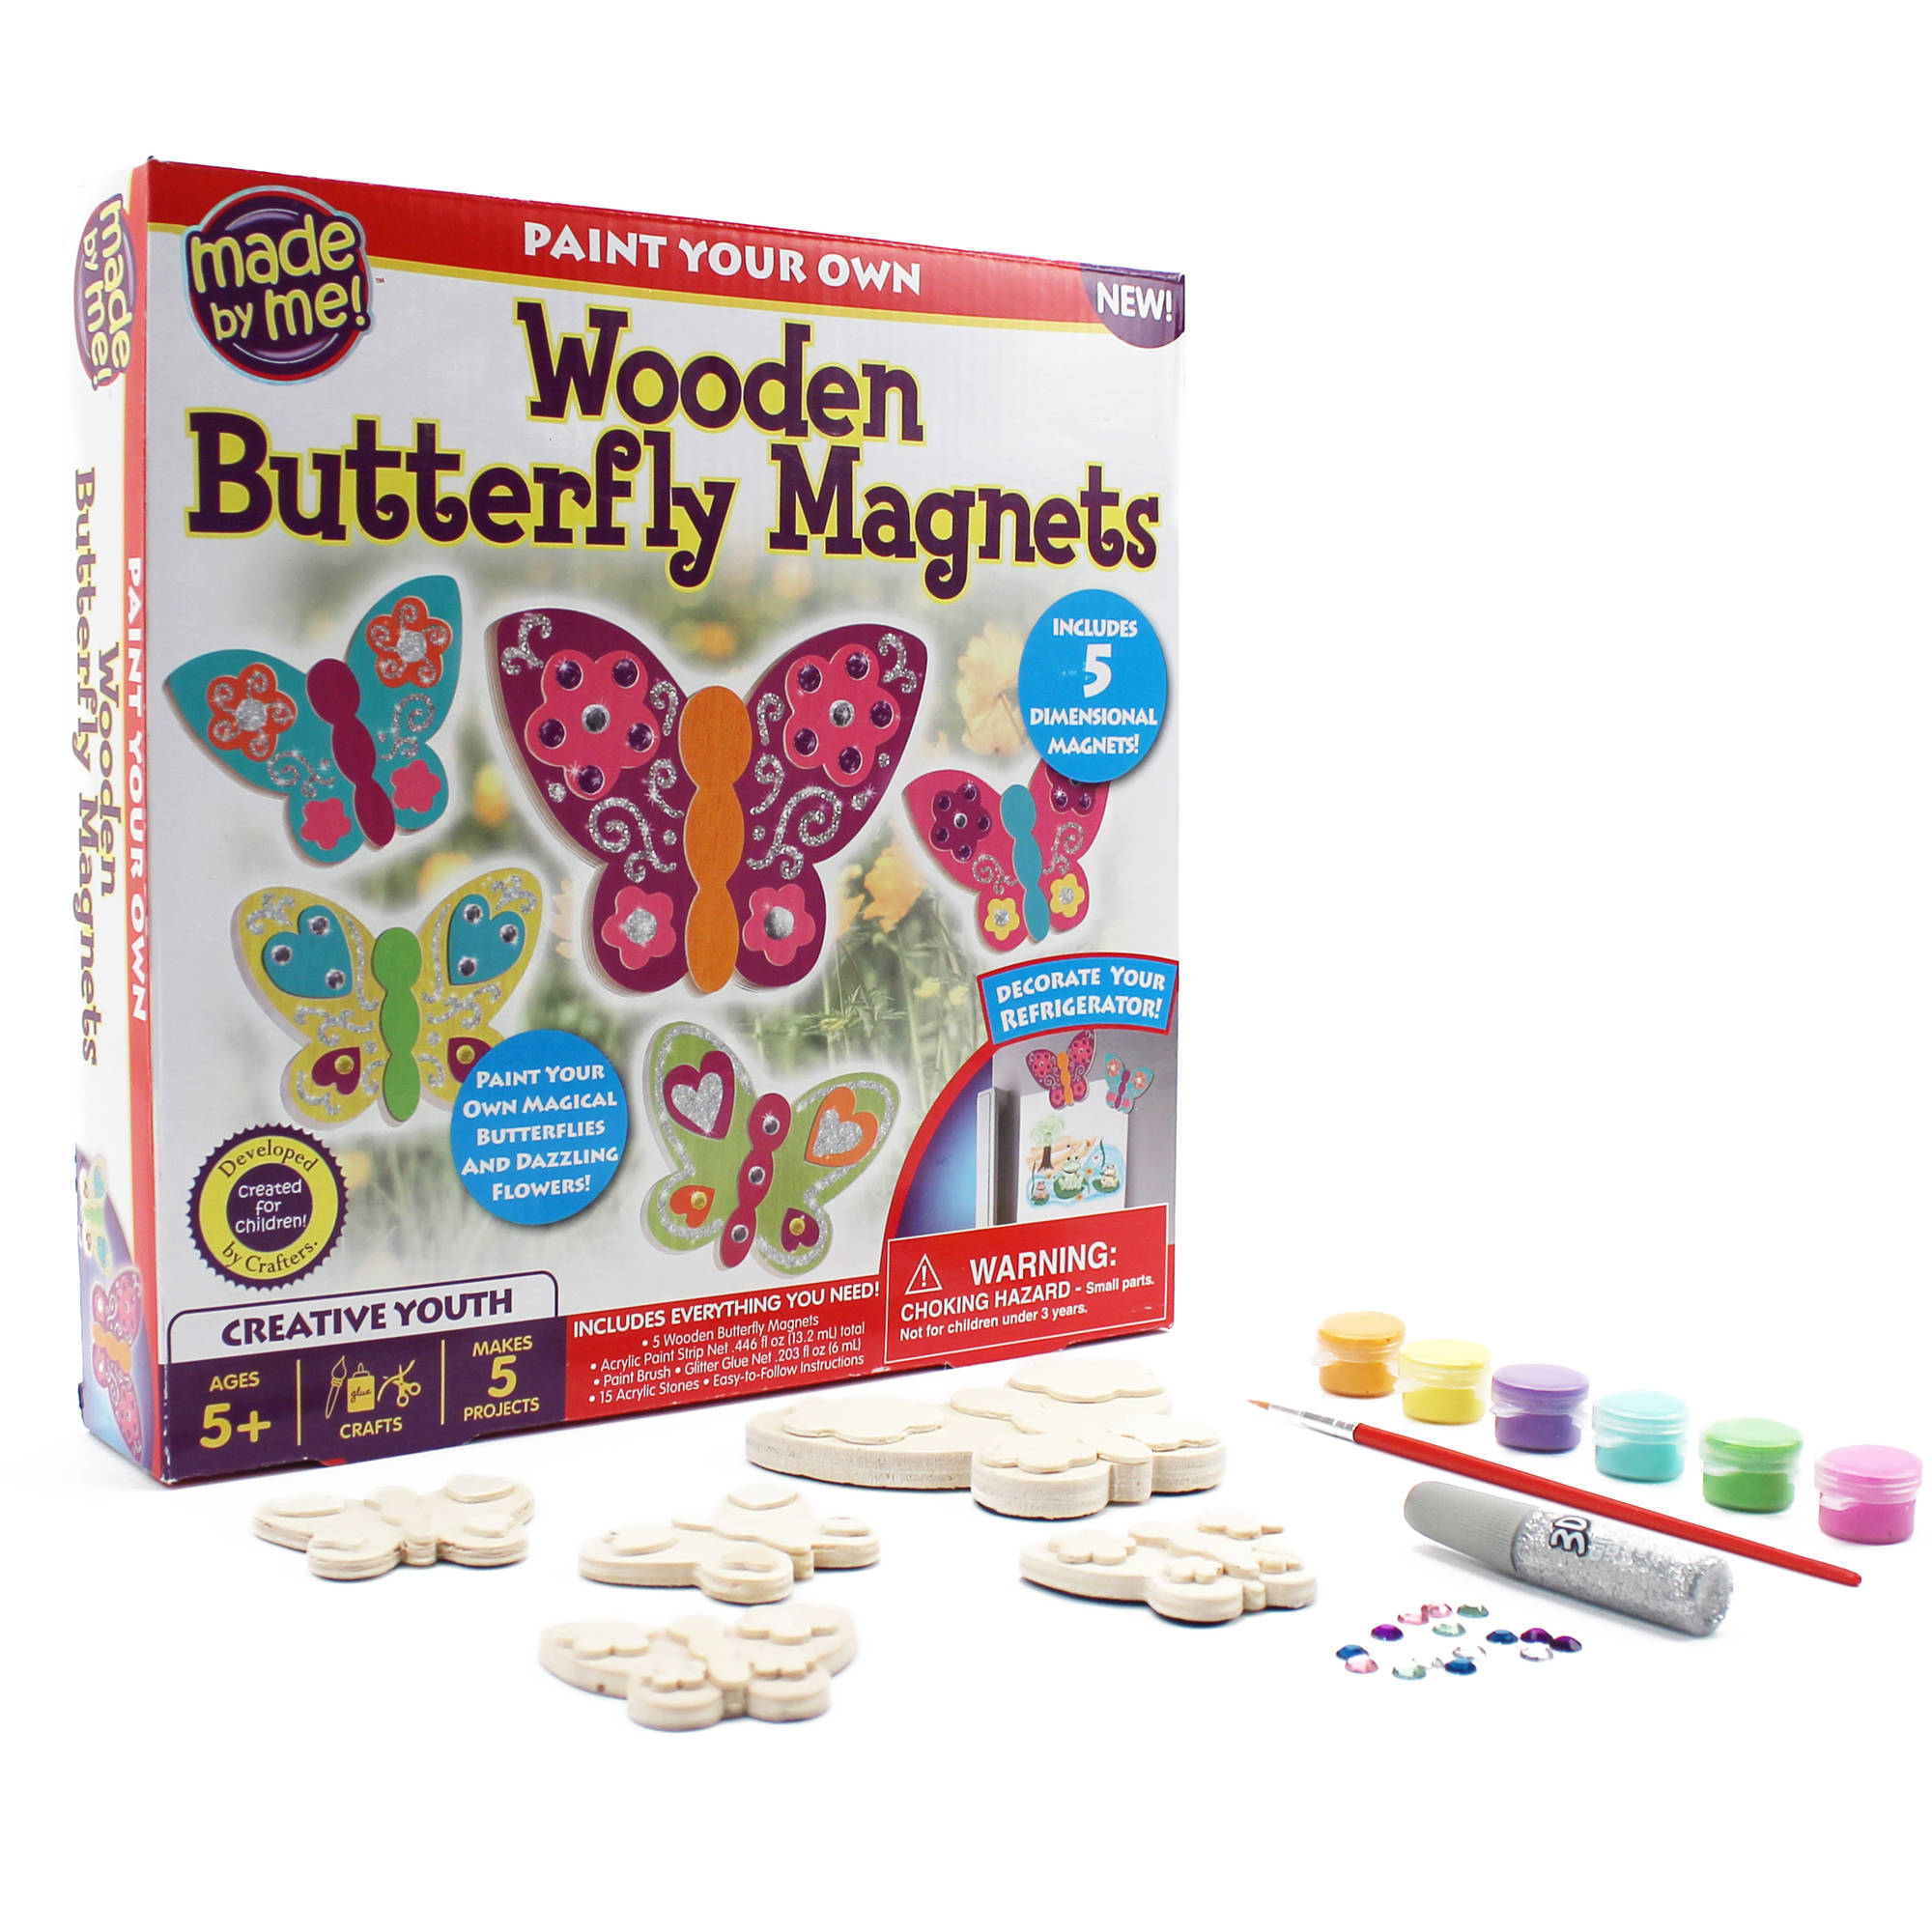 Kids wood craft kits - Kids Craft Made By Me Wooden Butterfly Magnets Kit